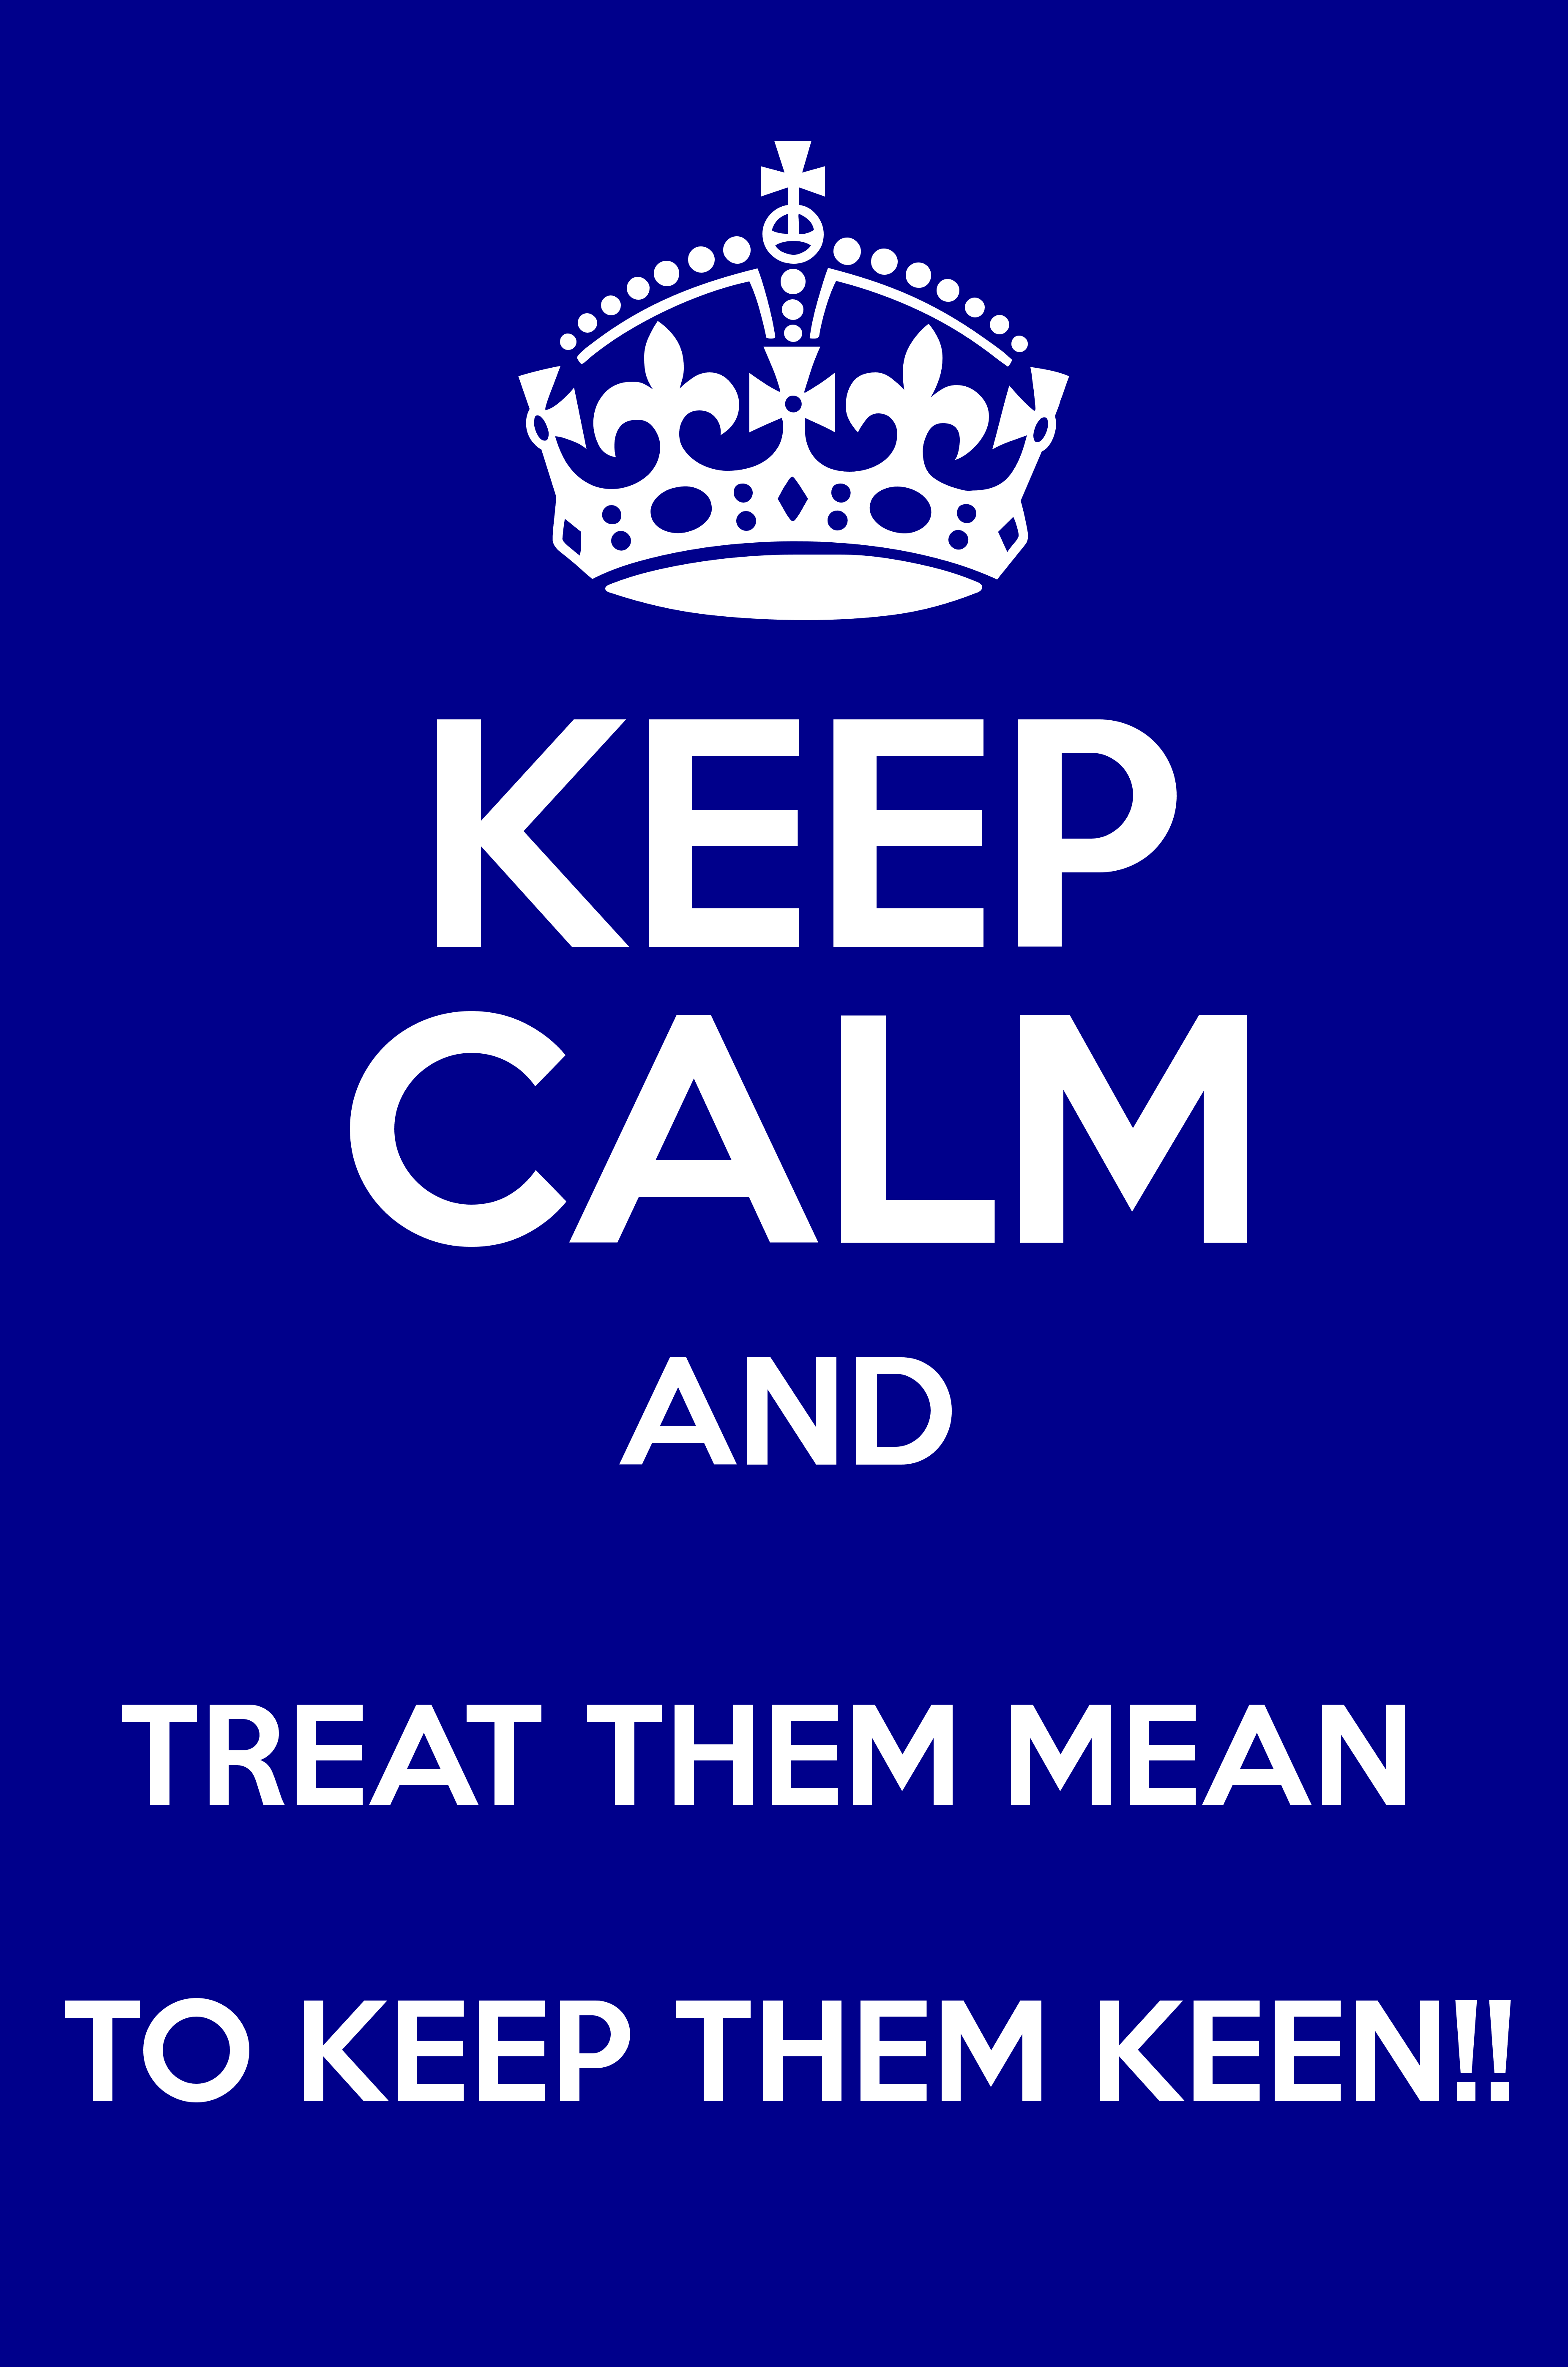 Treat them mean to keep them keen